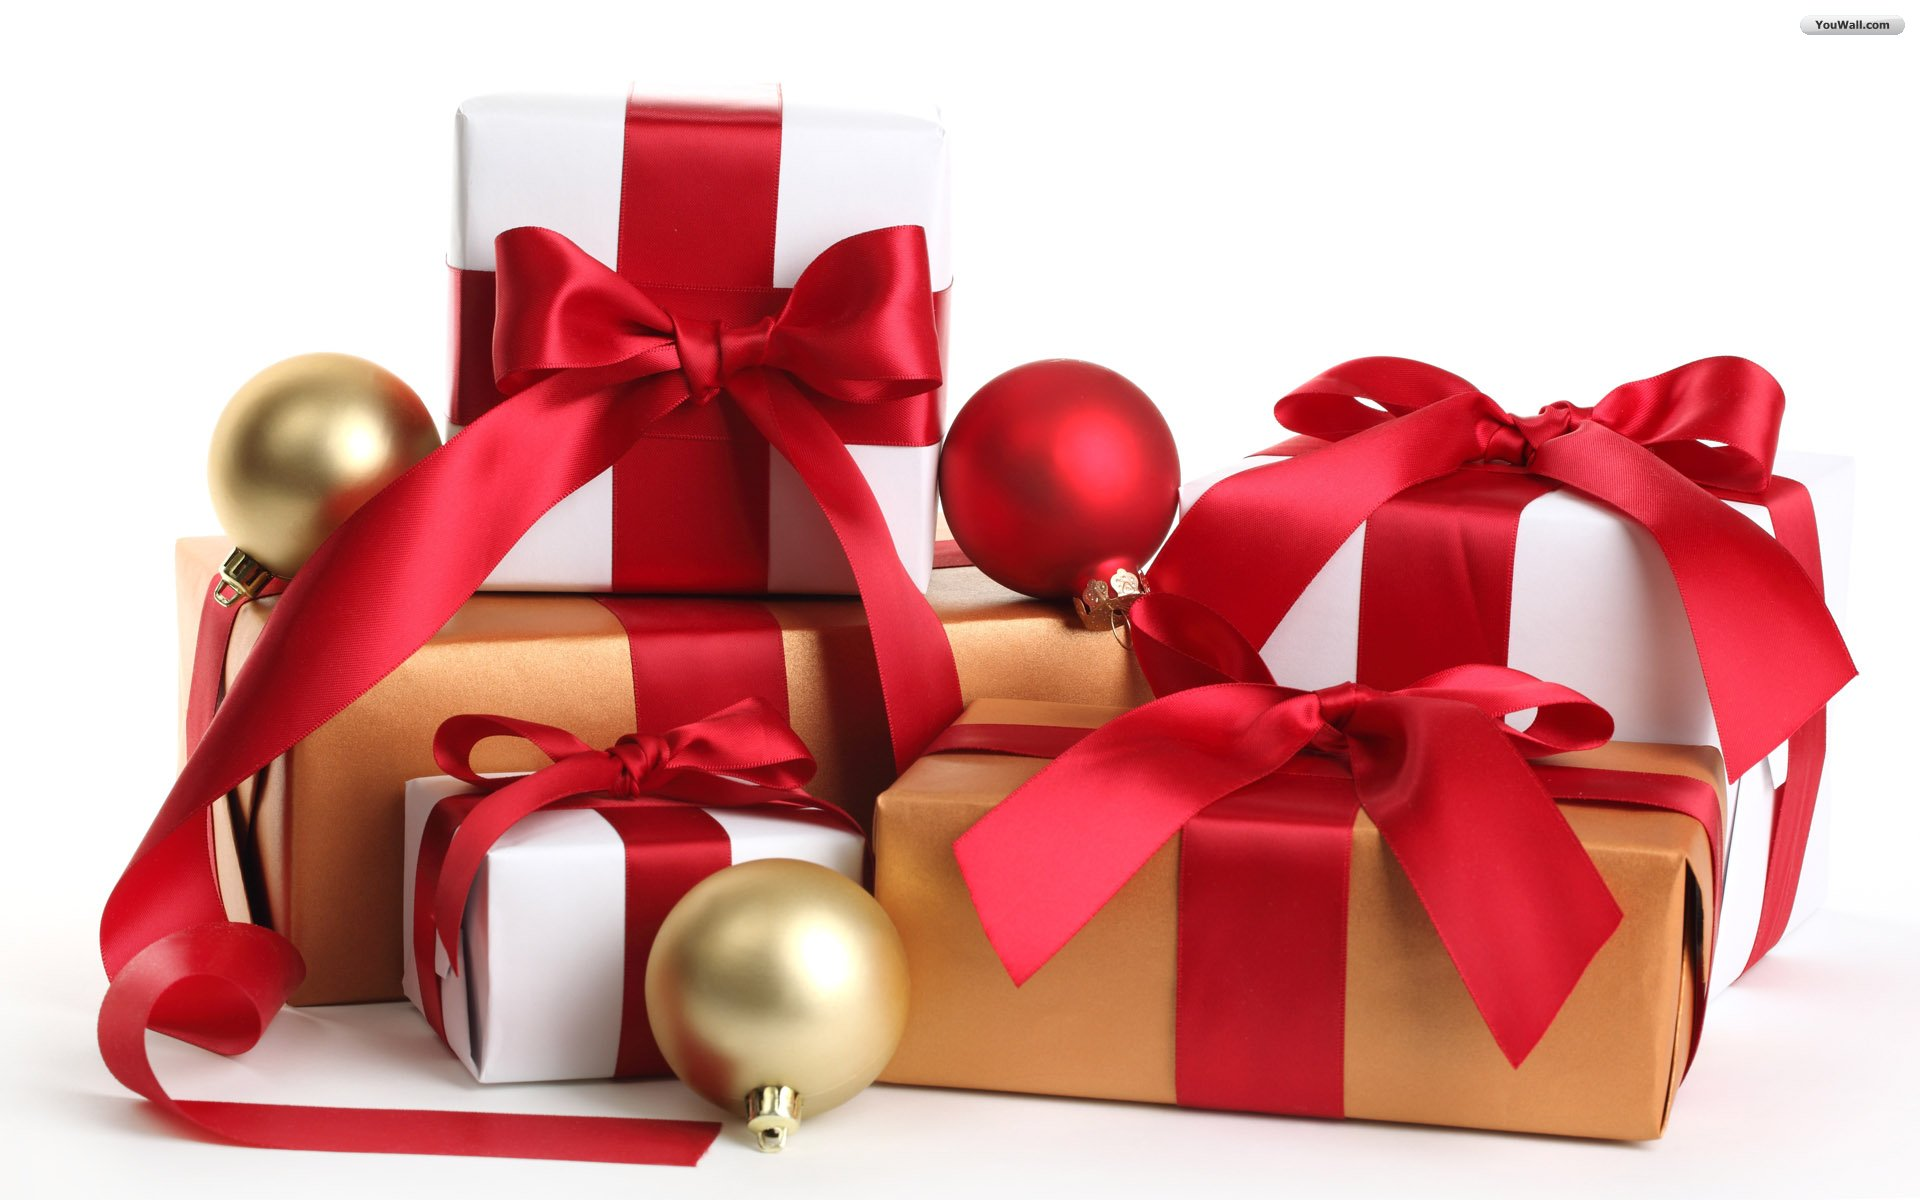 Best Wallpaper Gifts Christmas Gift Hd 950276 Png Images Pngio